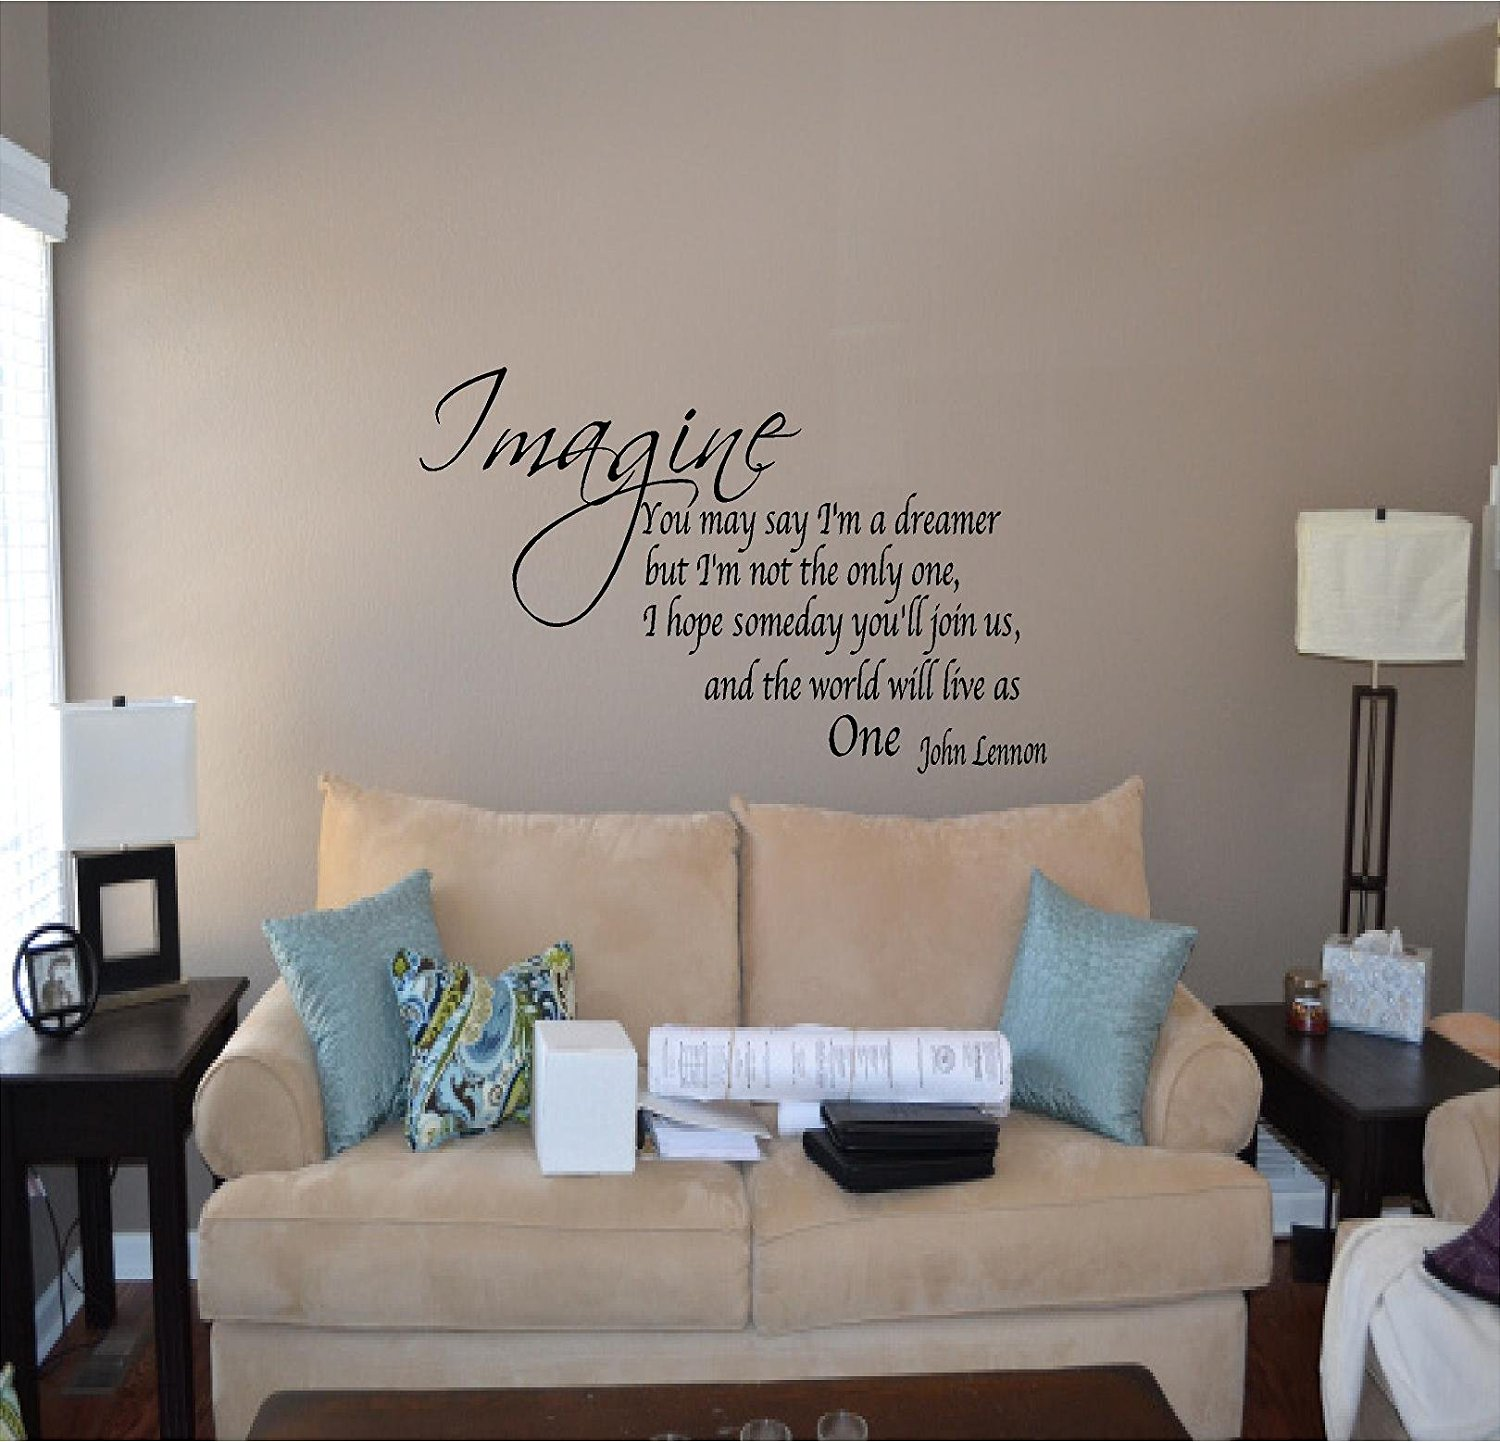 Cheap Wall Stickers Inspirational Quotes Find Wall Stickers